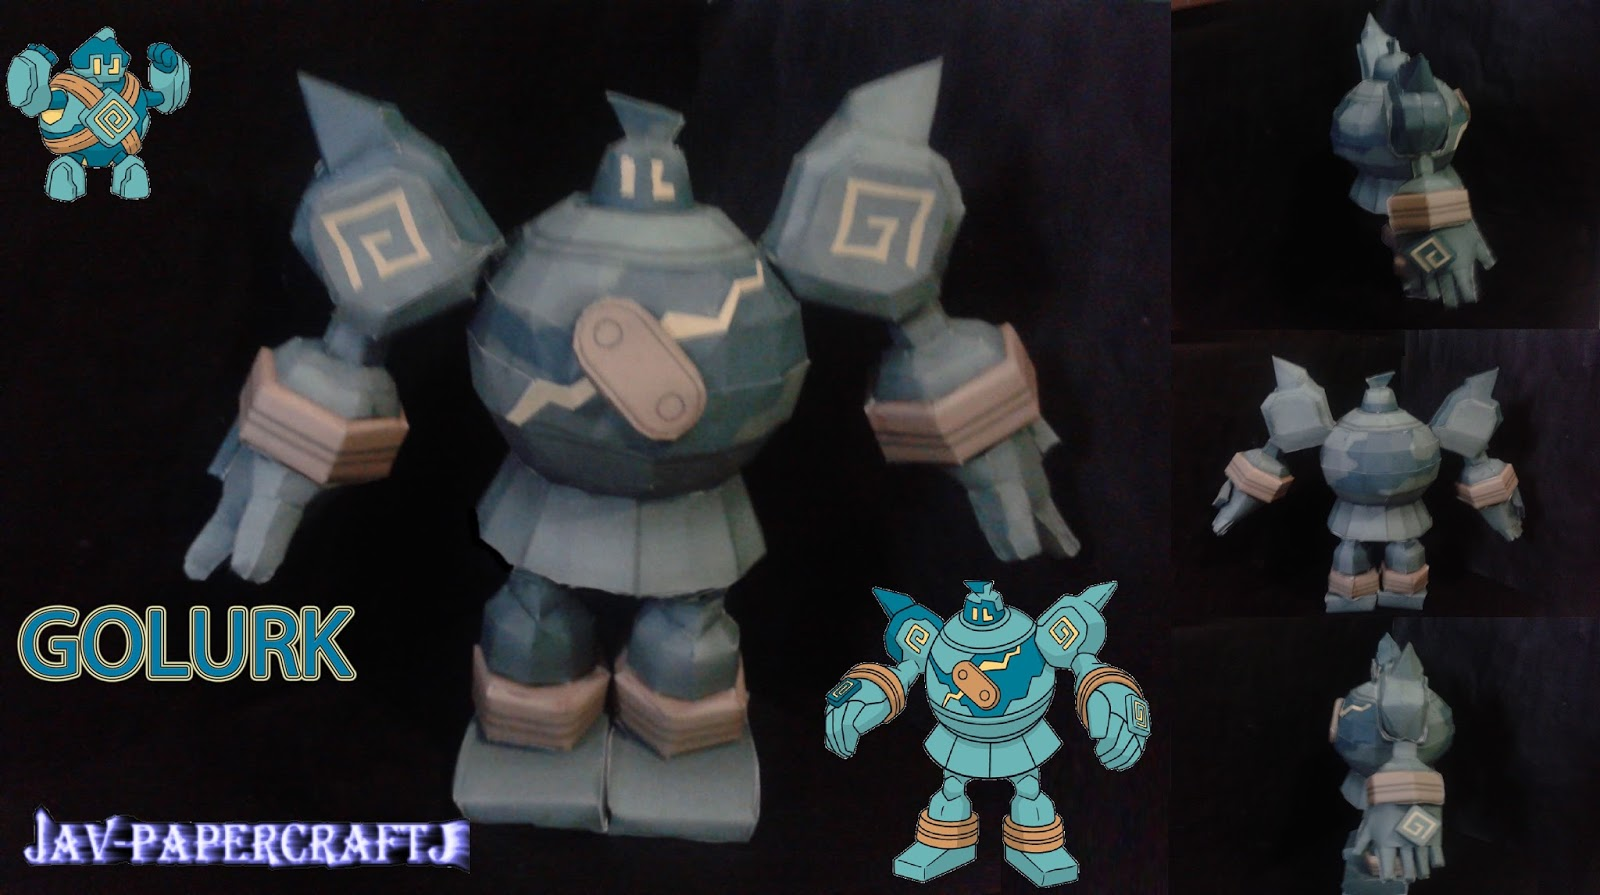 Pokemon Golurk Papercraft